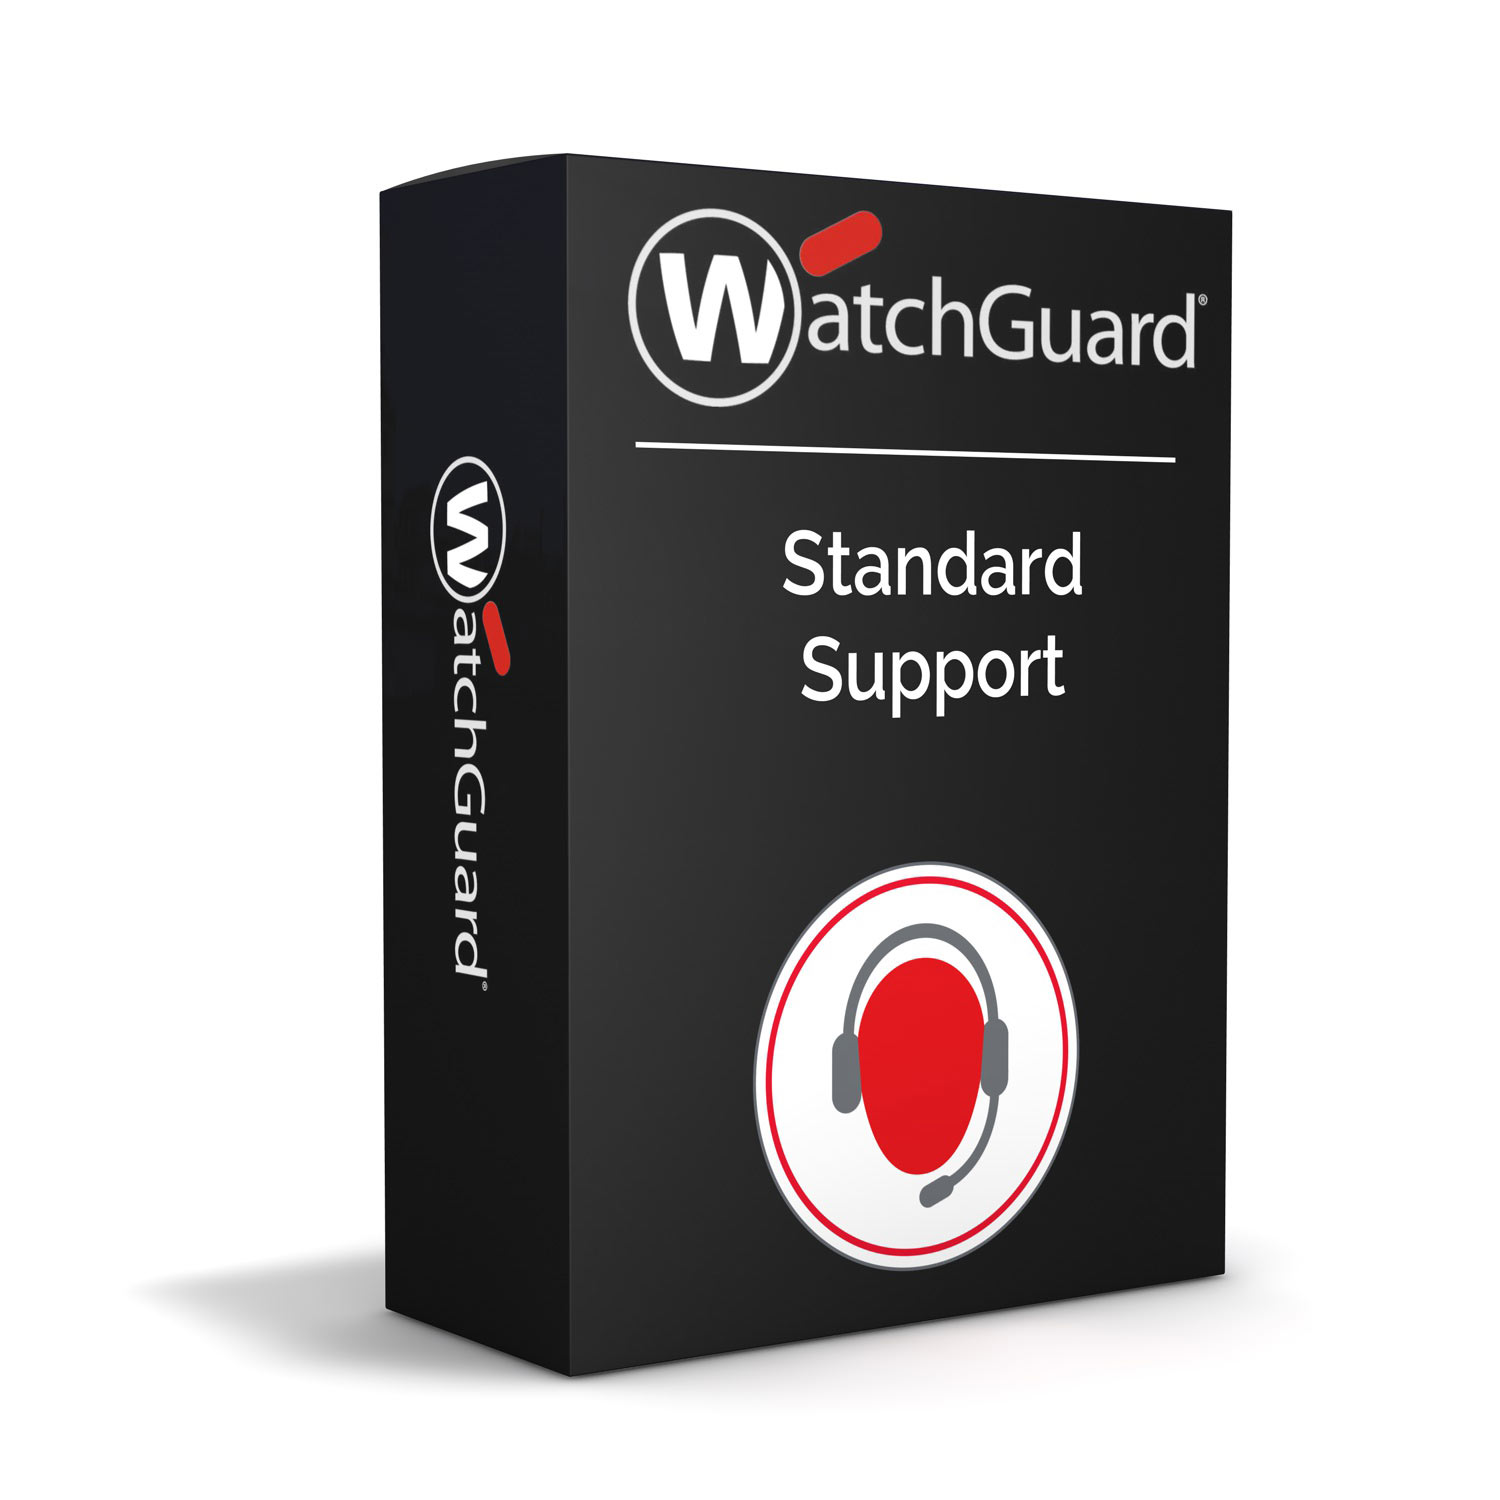 WatchGuard Standard Support Renewal 1-yr for FireboxV Large